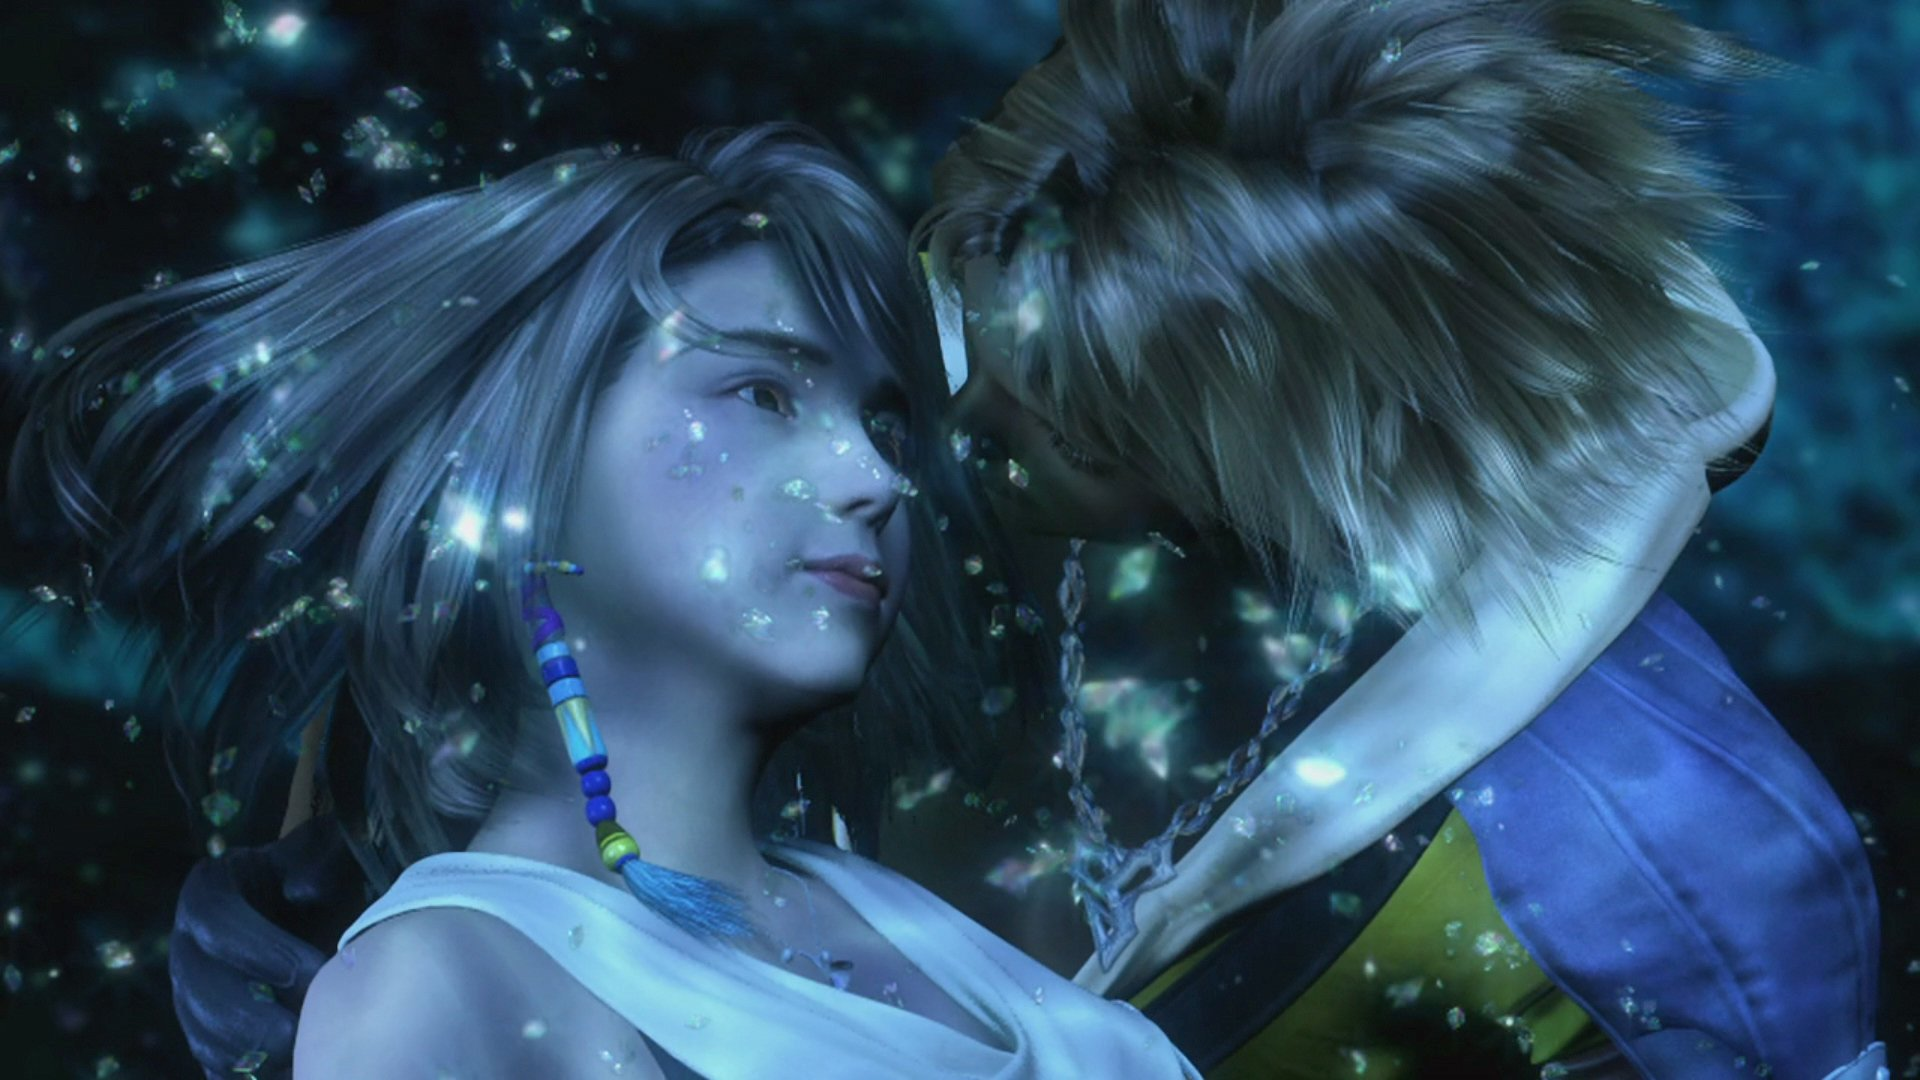 Final Fantasy X X 2 For Switch Doesn T Include Both Games On The Card